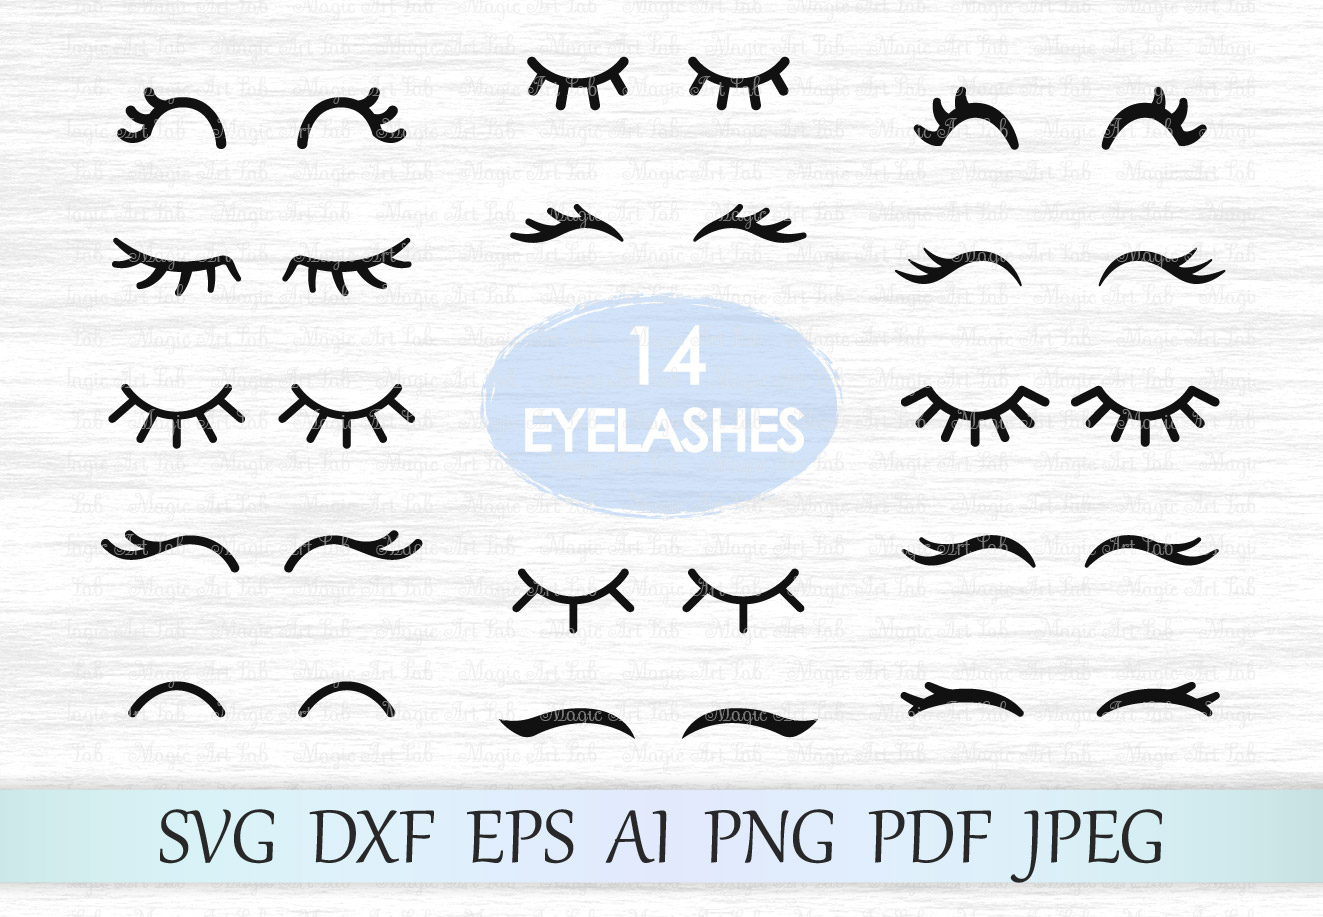 Download Free Eyelashes Graphic By Magicartlab Creative Fabrica for Cricut Explore, Silhouette and other cutting machines.